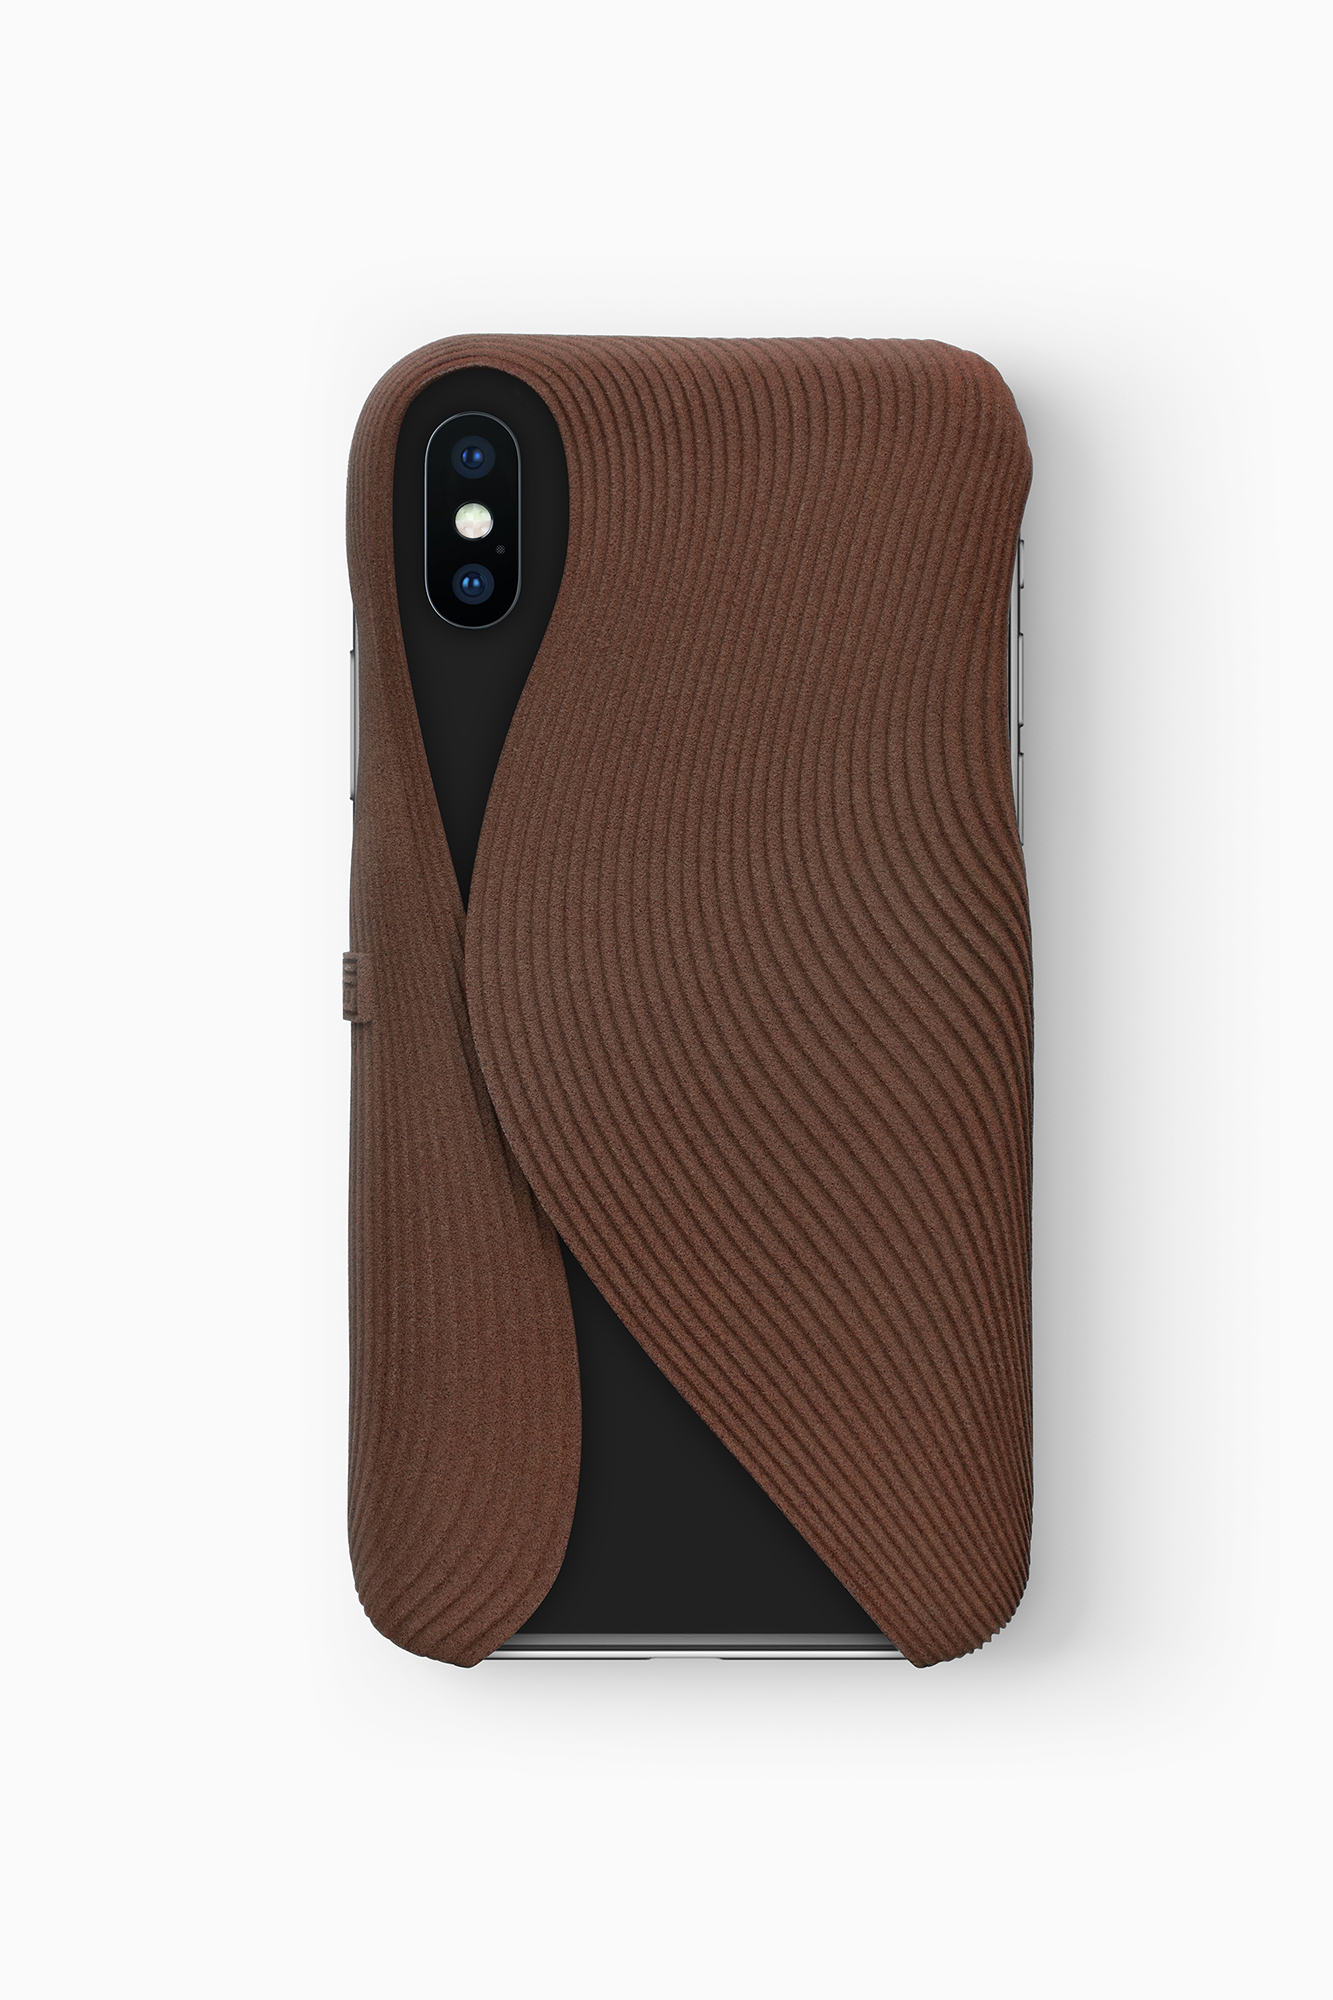 FOLD Case for iPhone X in Brown, Design by Matthijs Kok for Freshfiber